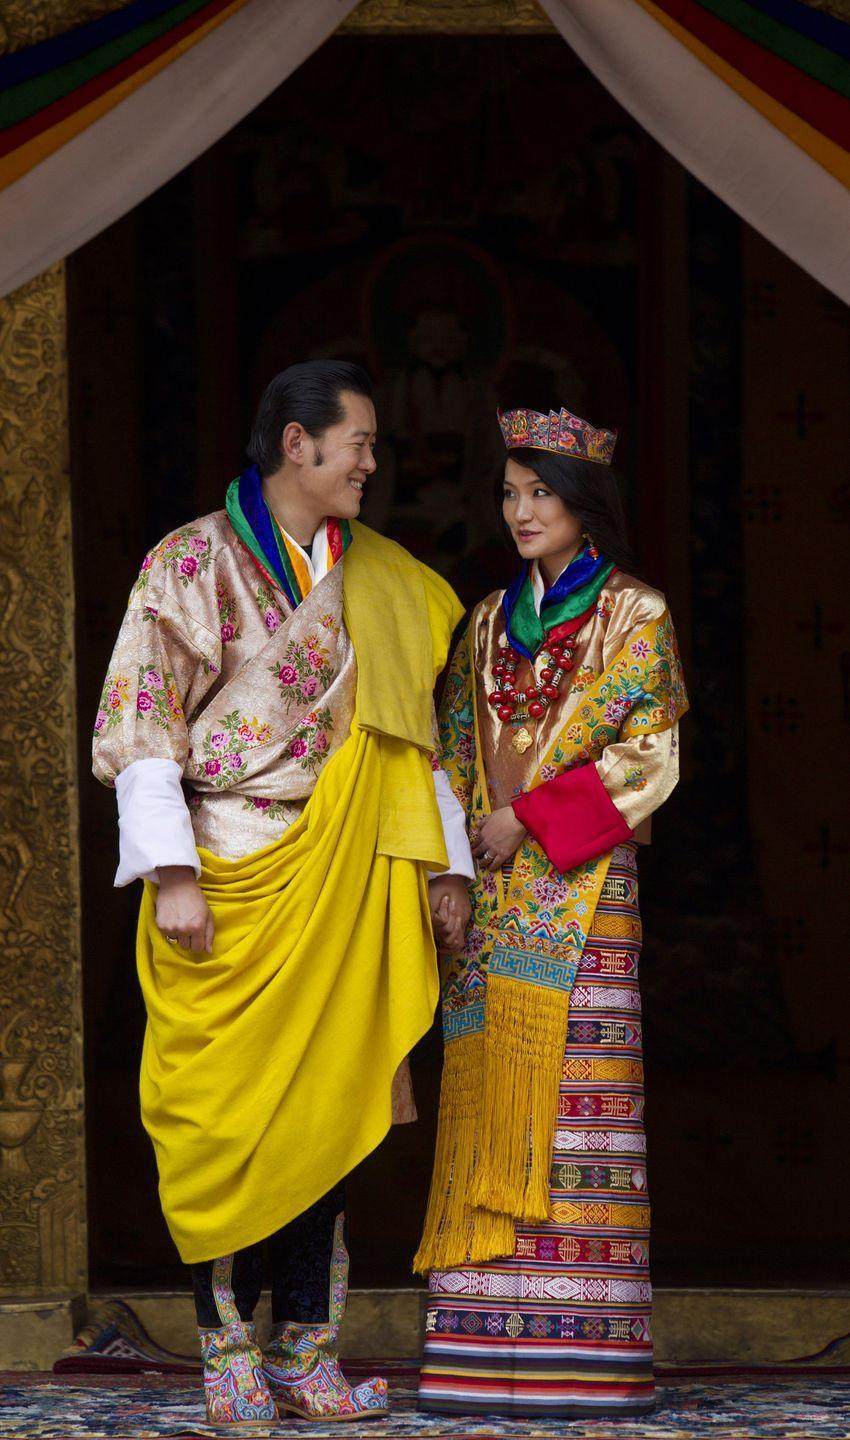 "<p>The Queen of Bhutan was married in a colorful Bhutanese kira, one of several that she wore during her <a href=""https://www.washingtonpost.com/world/bhutans-royal-wedding/2011/10/12/gIQApfCkfL_gallery.html?utm_term=.ea52b2ff75f5"" rel=""nofollow noopener"" target=""_blank"" data-ylk=""slk:three day wedding celebration"" class=""link rapid-noclick-resp"">three day wedding celebration</a>.</p>"